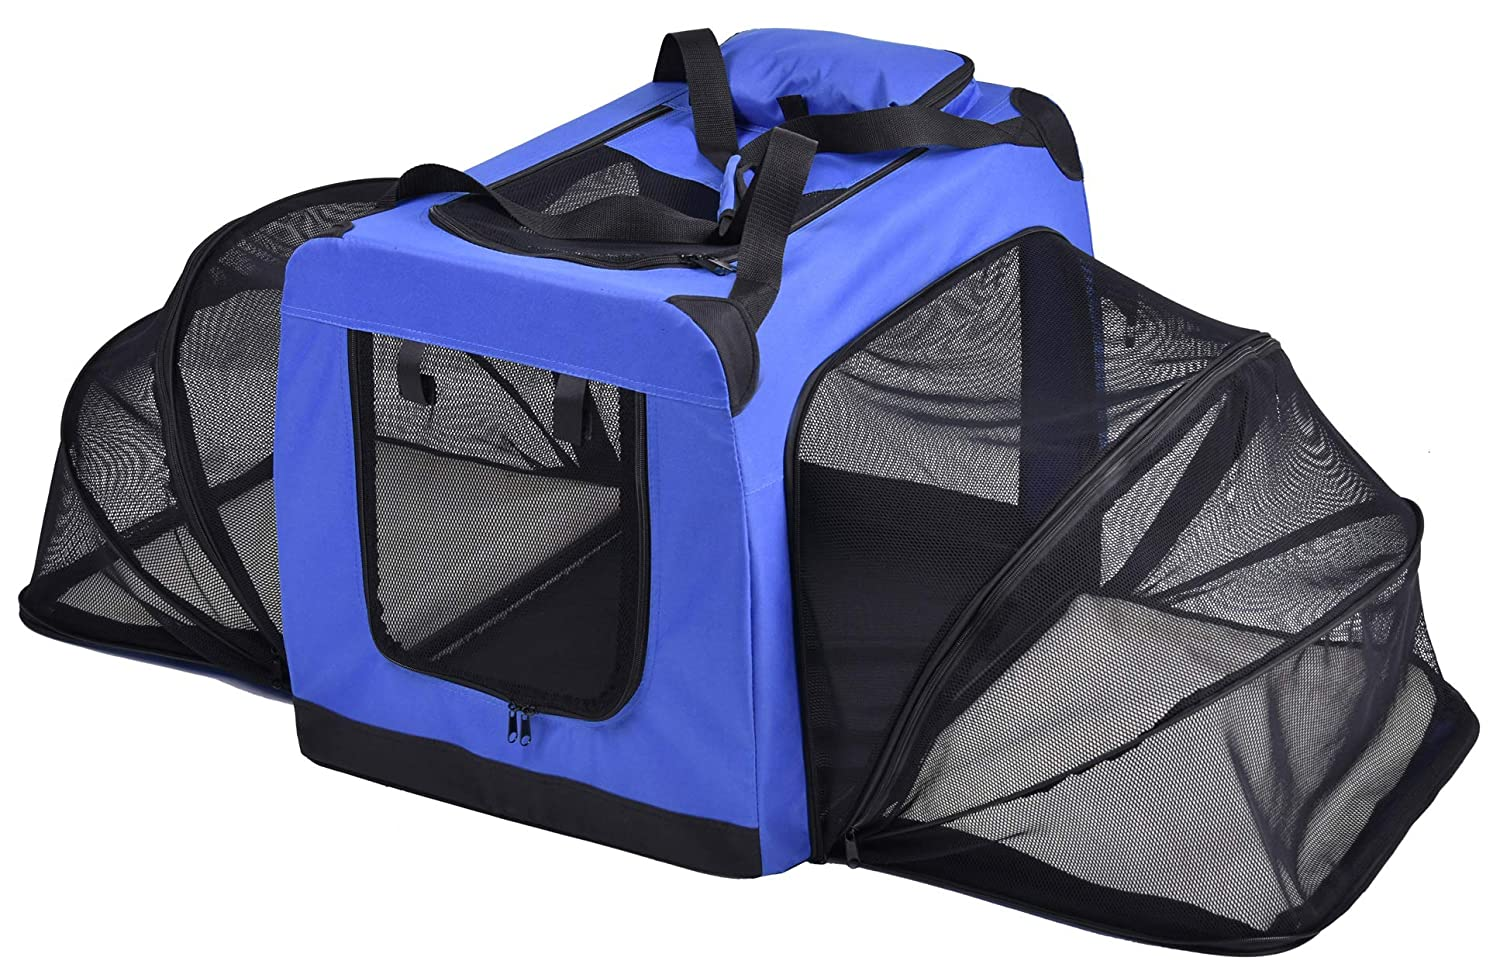 bluee Small bluee Small Pet Life Hounda Accordion' Metal Framed Soft-Folding Collapsible Dual-Sided Expandable Pet Dog Crate, Small, bluee